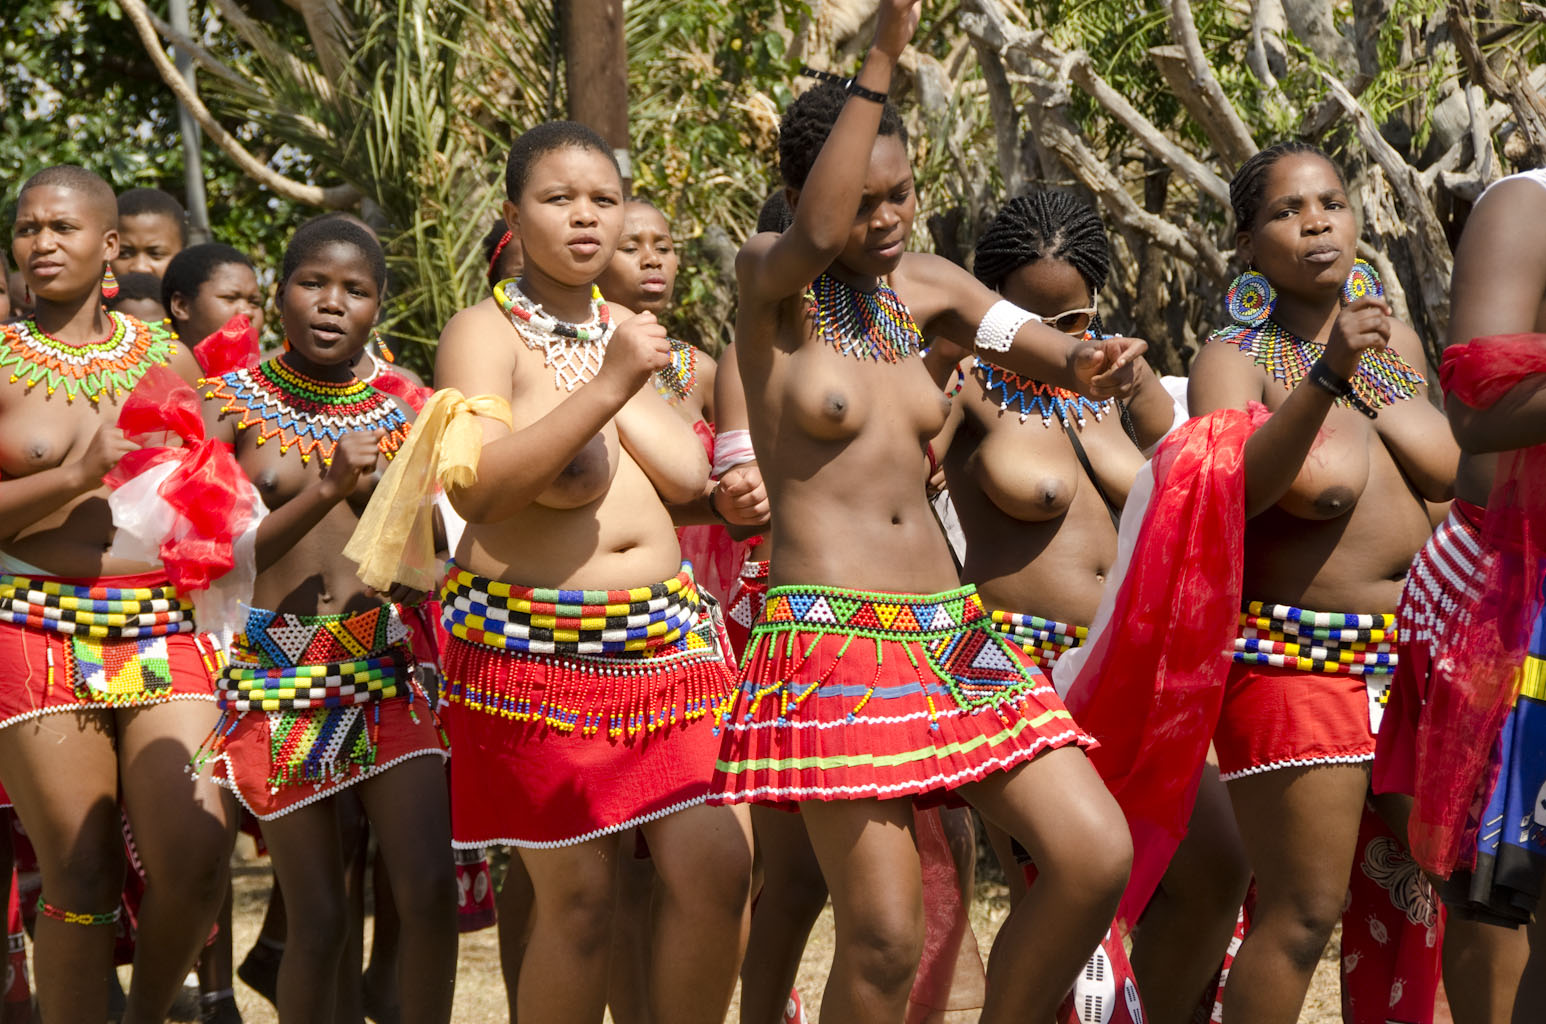 from Lee umhlanga reed dance pussy